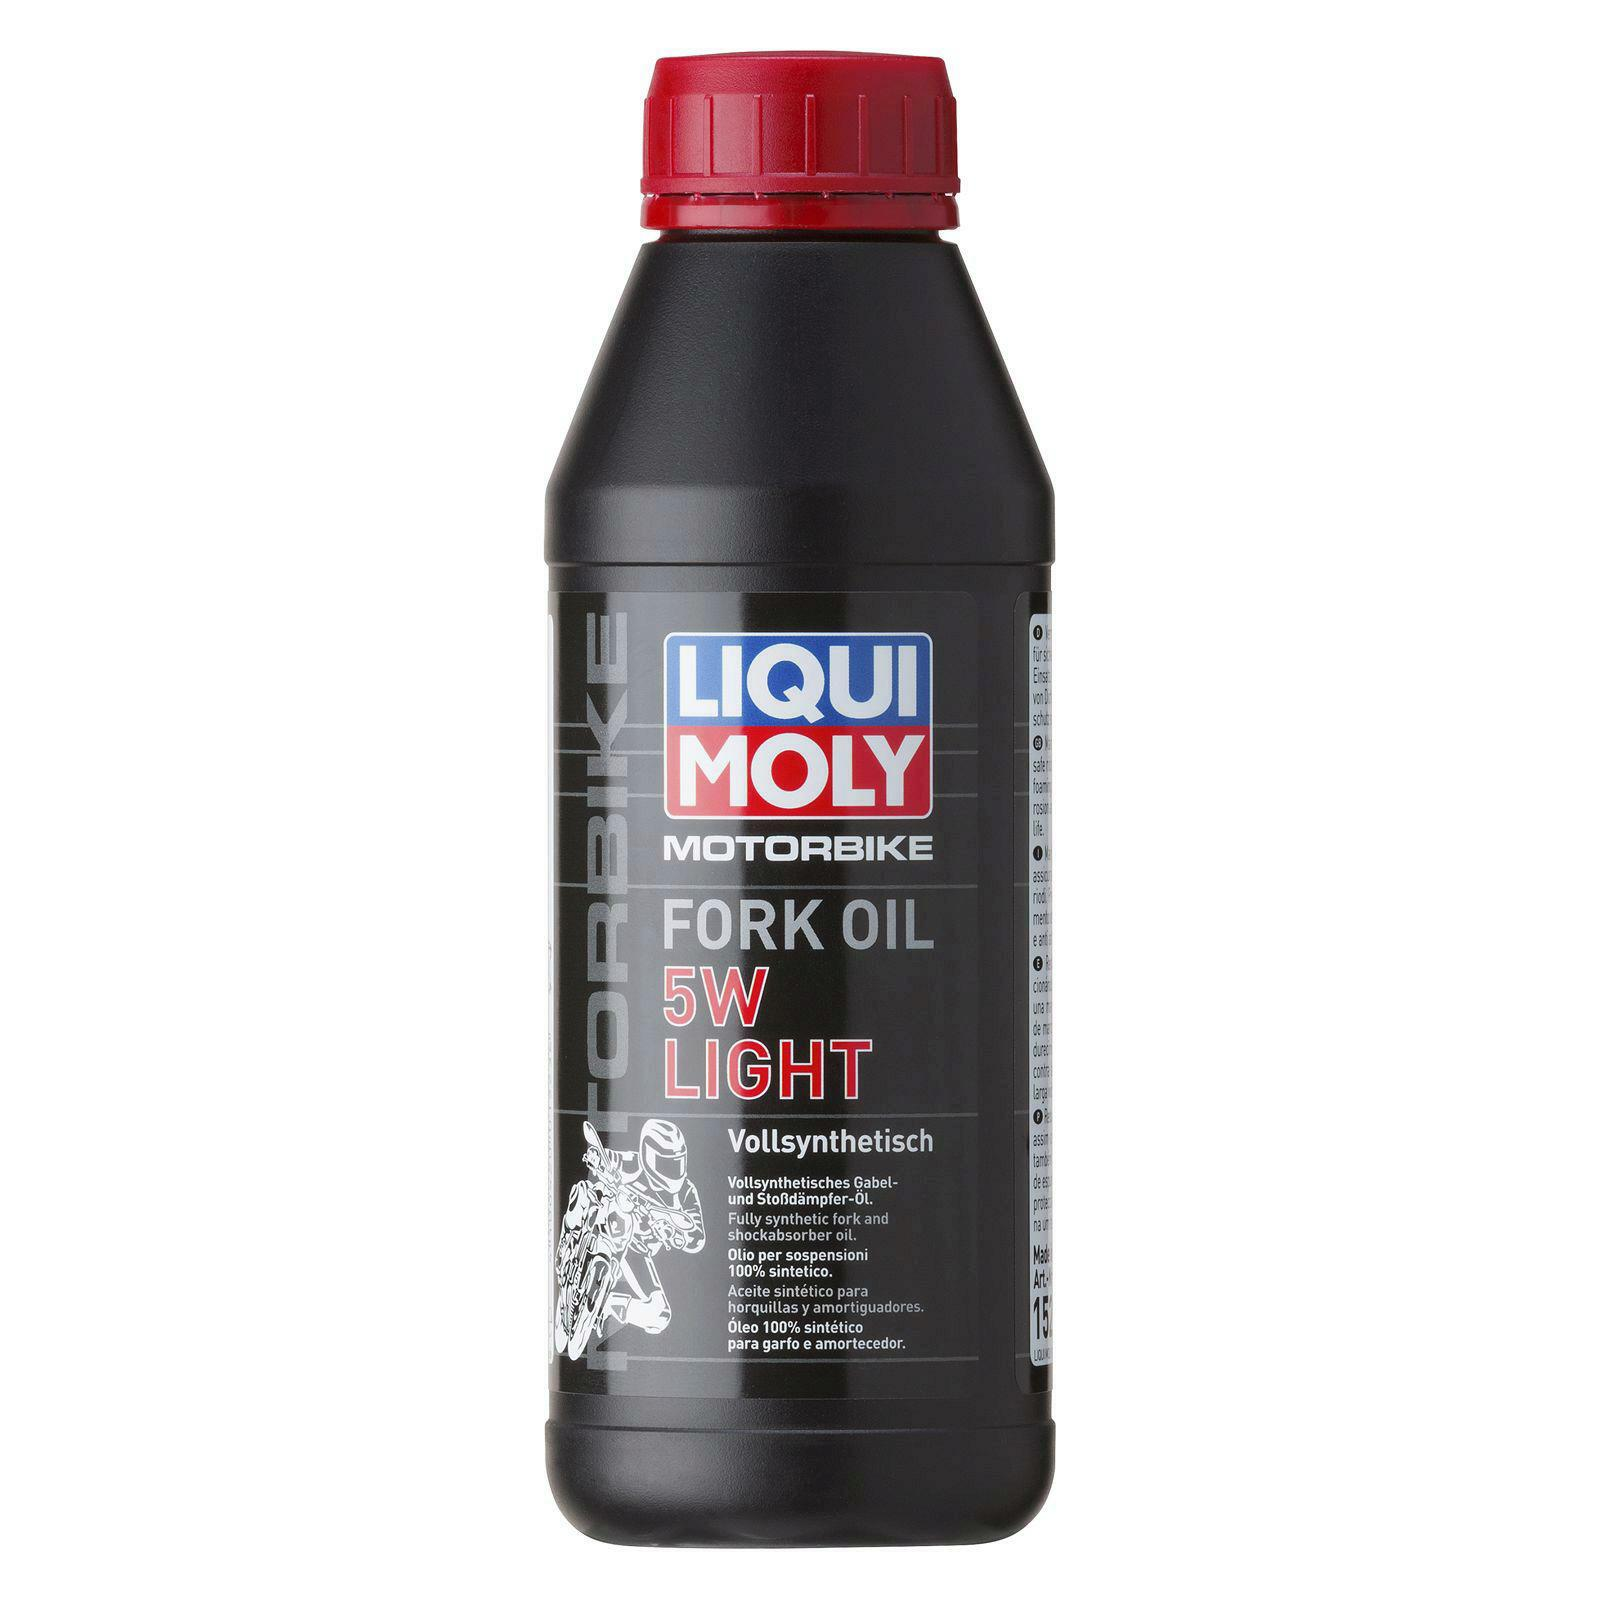 Liqui Moly Motorbike Fork Öl 5W light 500ml